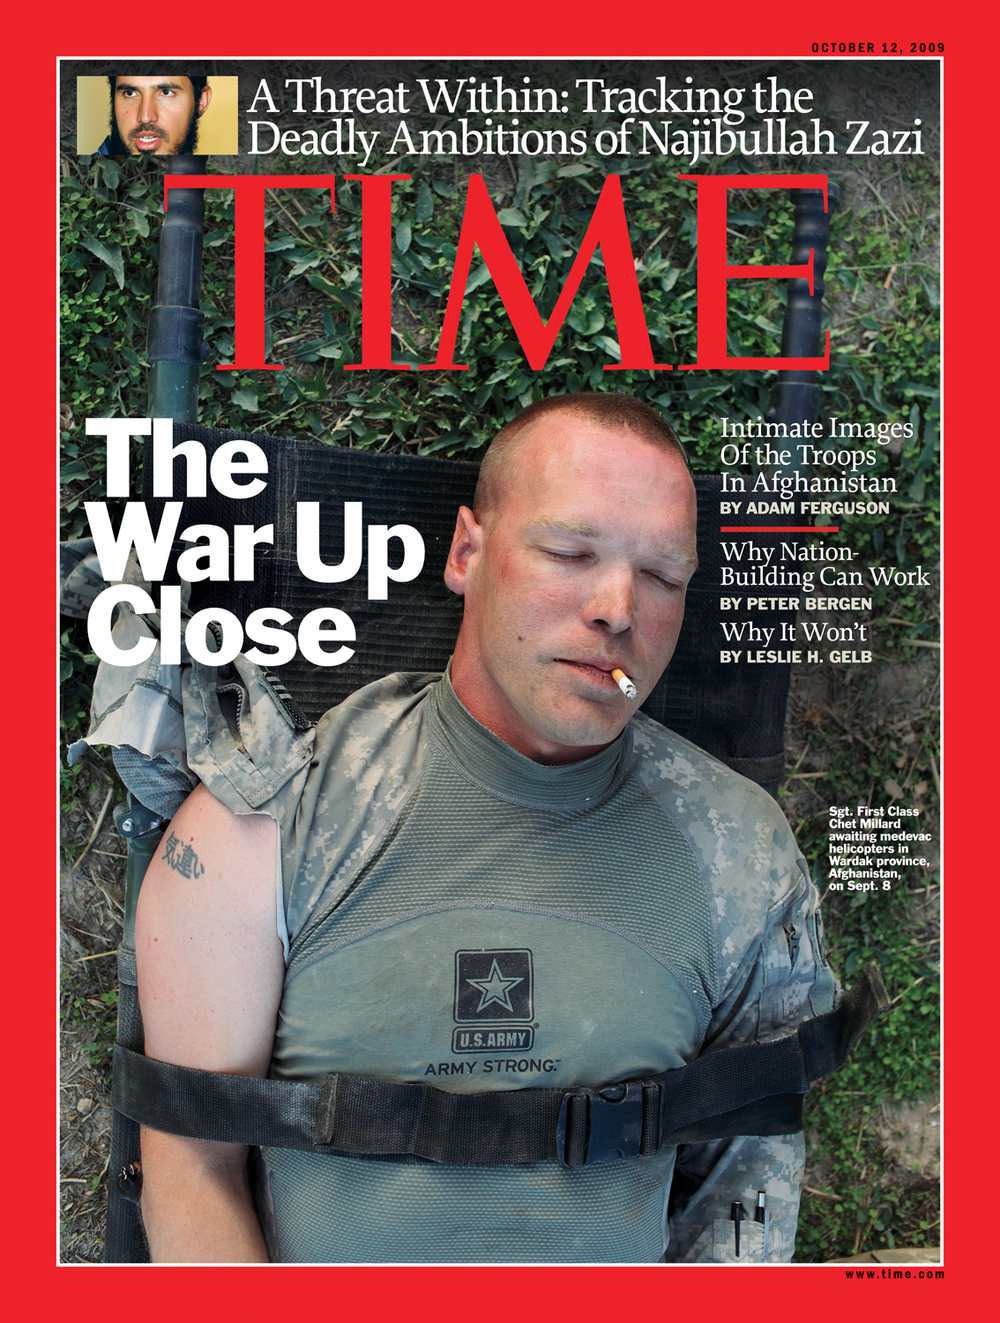 'The War Up Close' for Time Magazine